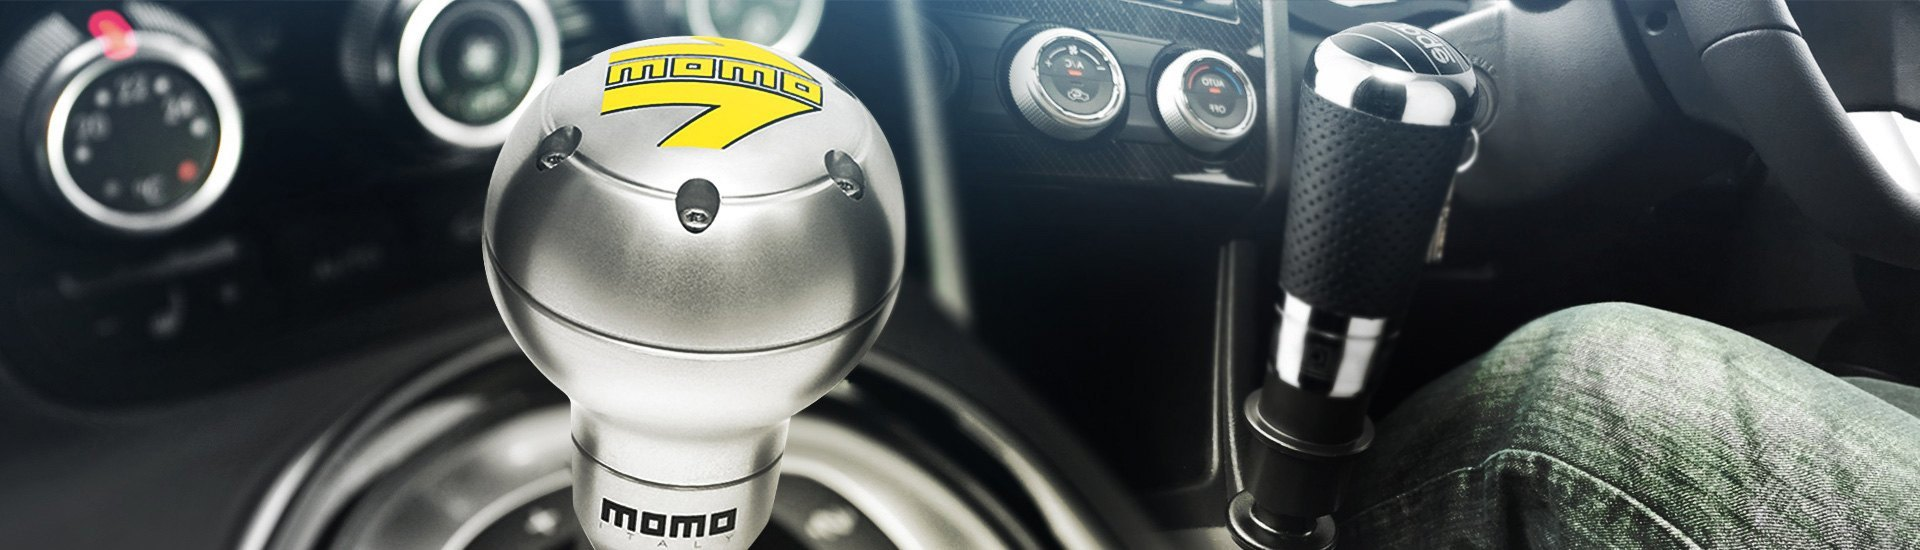 Custom Shift Knobs | Can You Handle One In Your Ride?